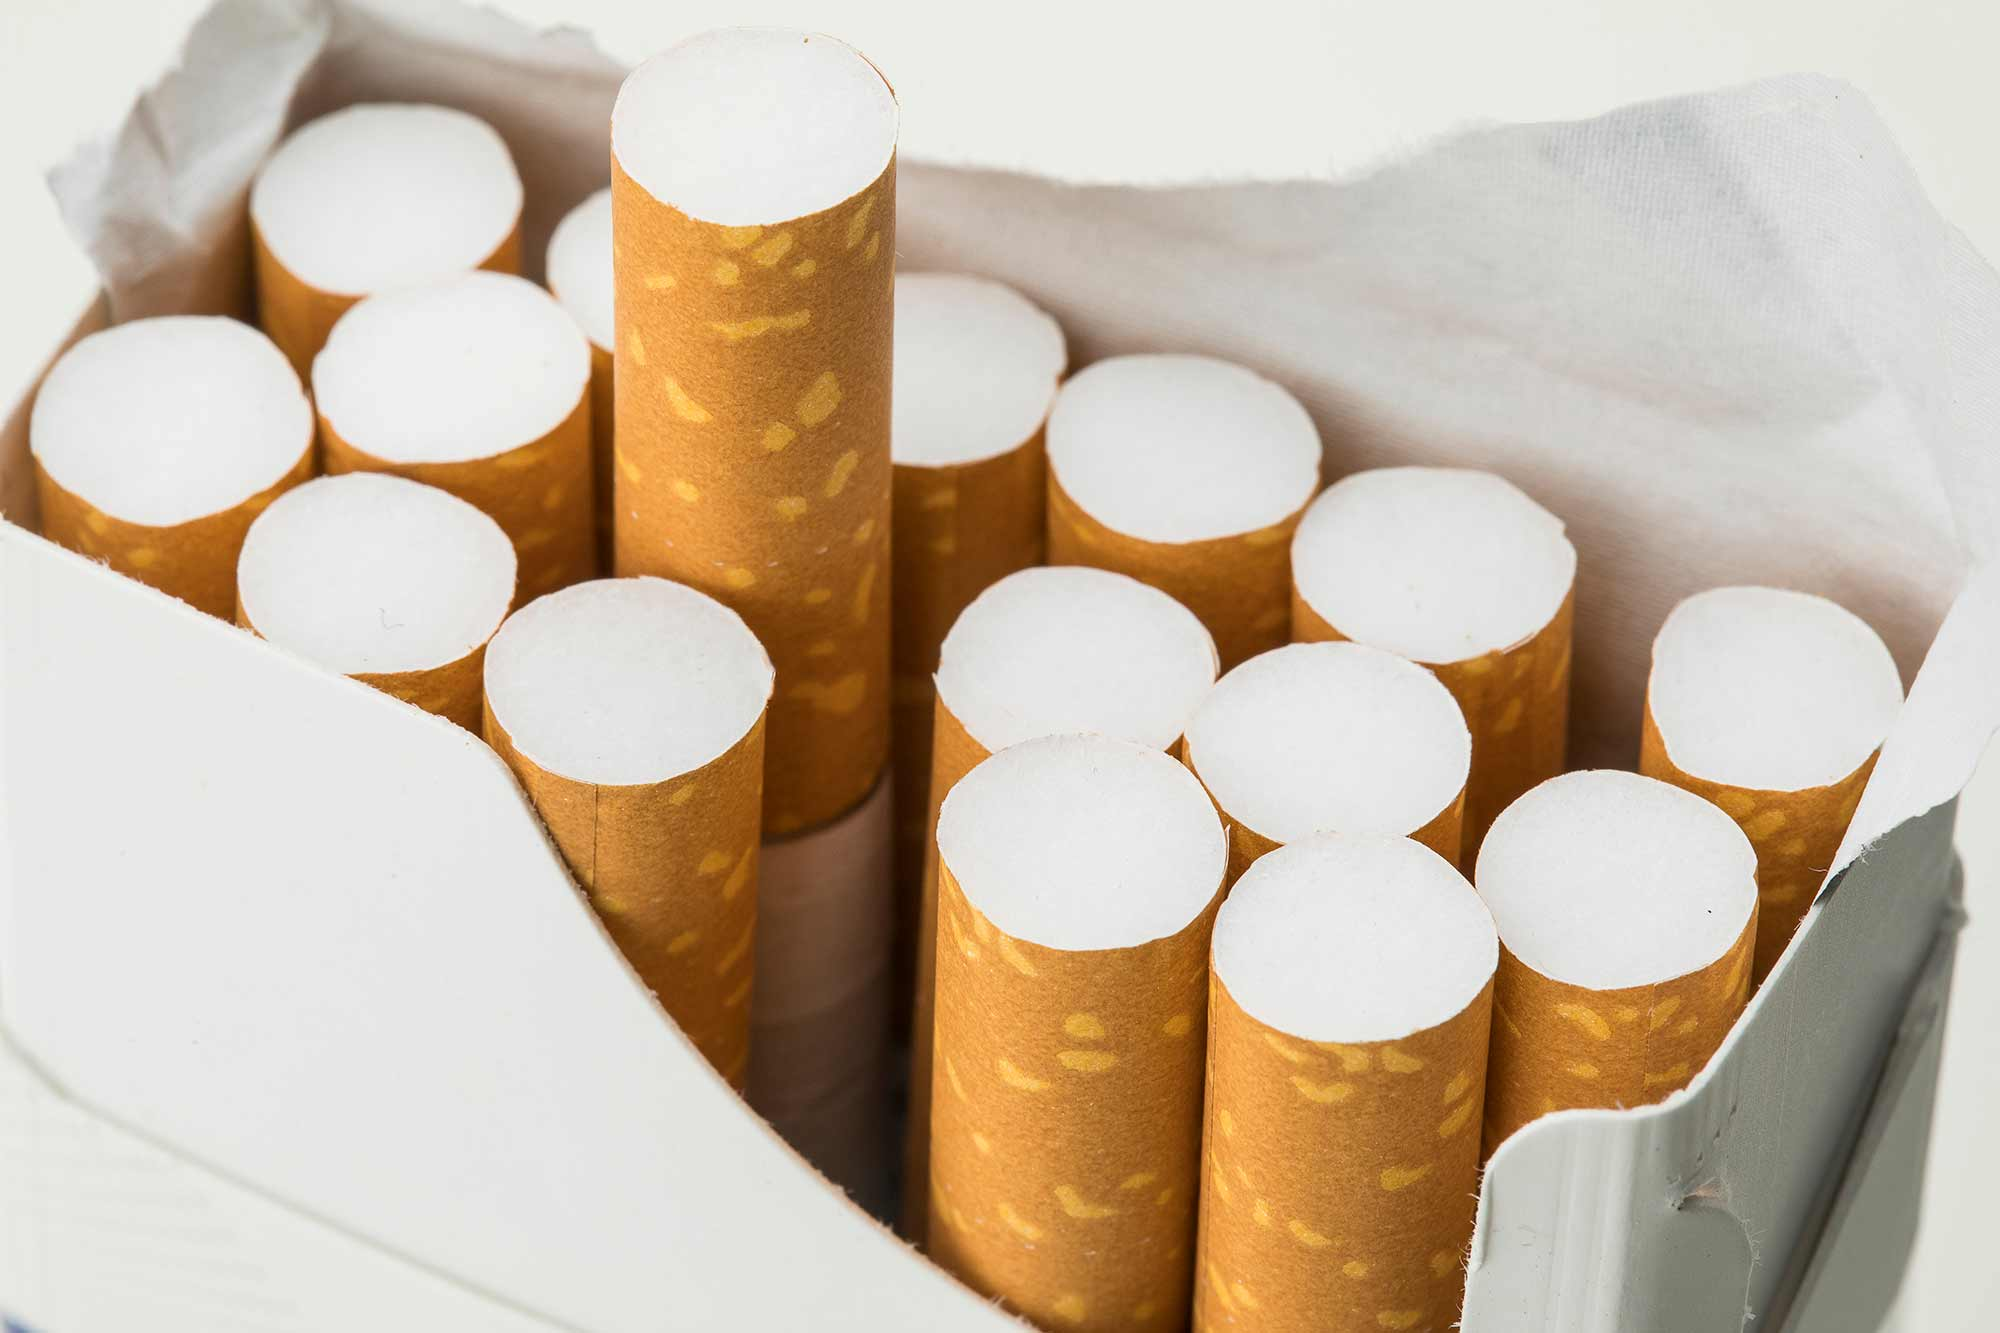 The introduction of plain, standardised packaging has led to a drop in cigarette sales